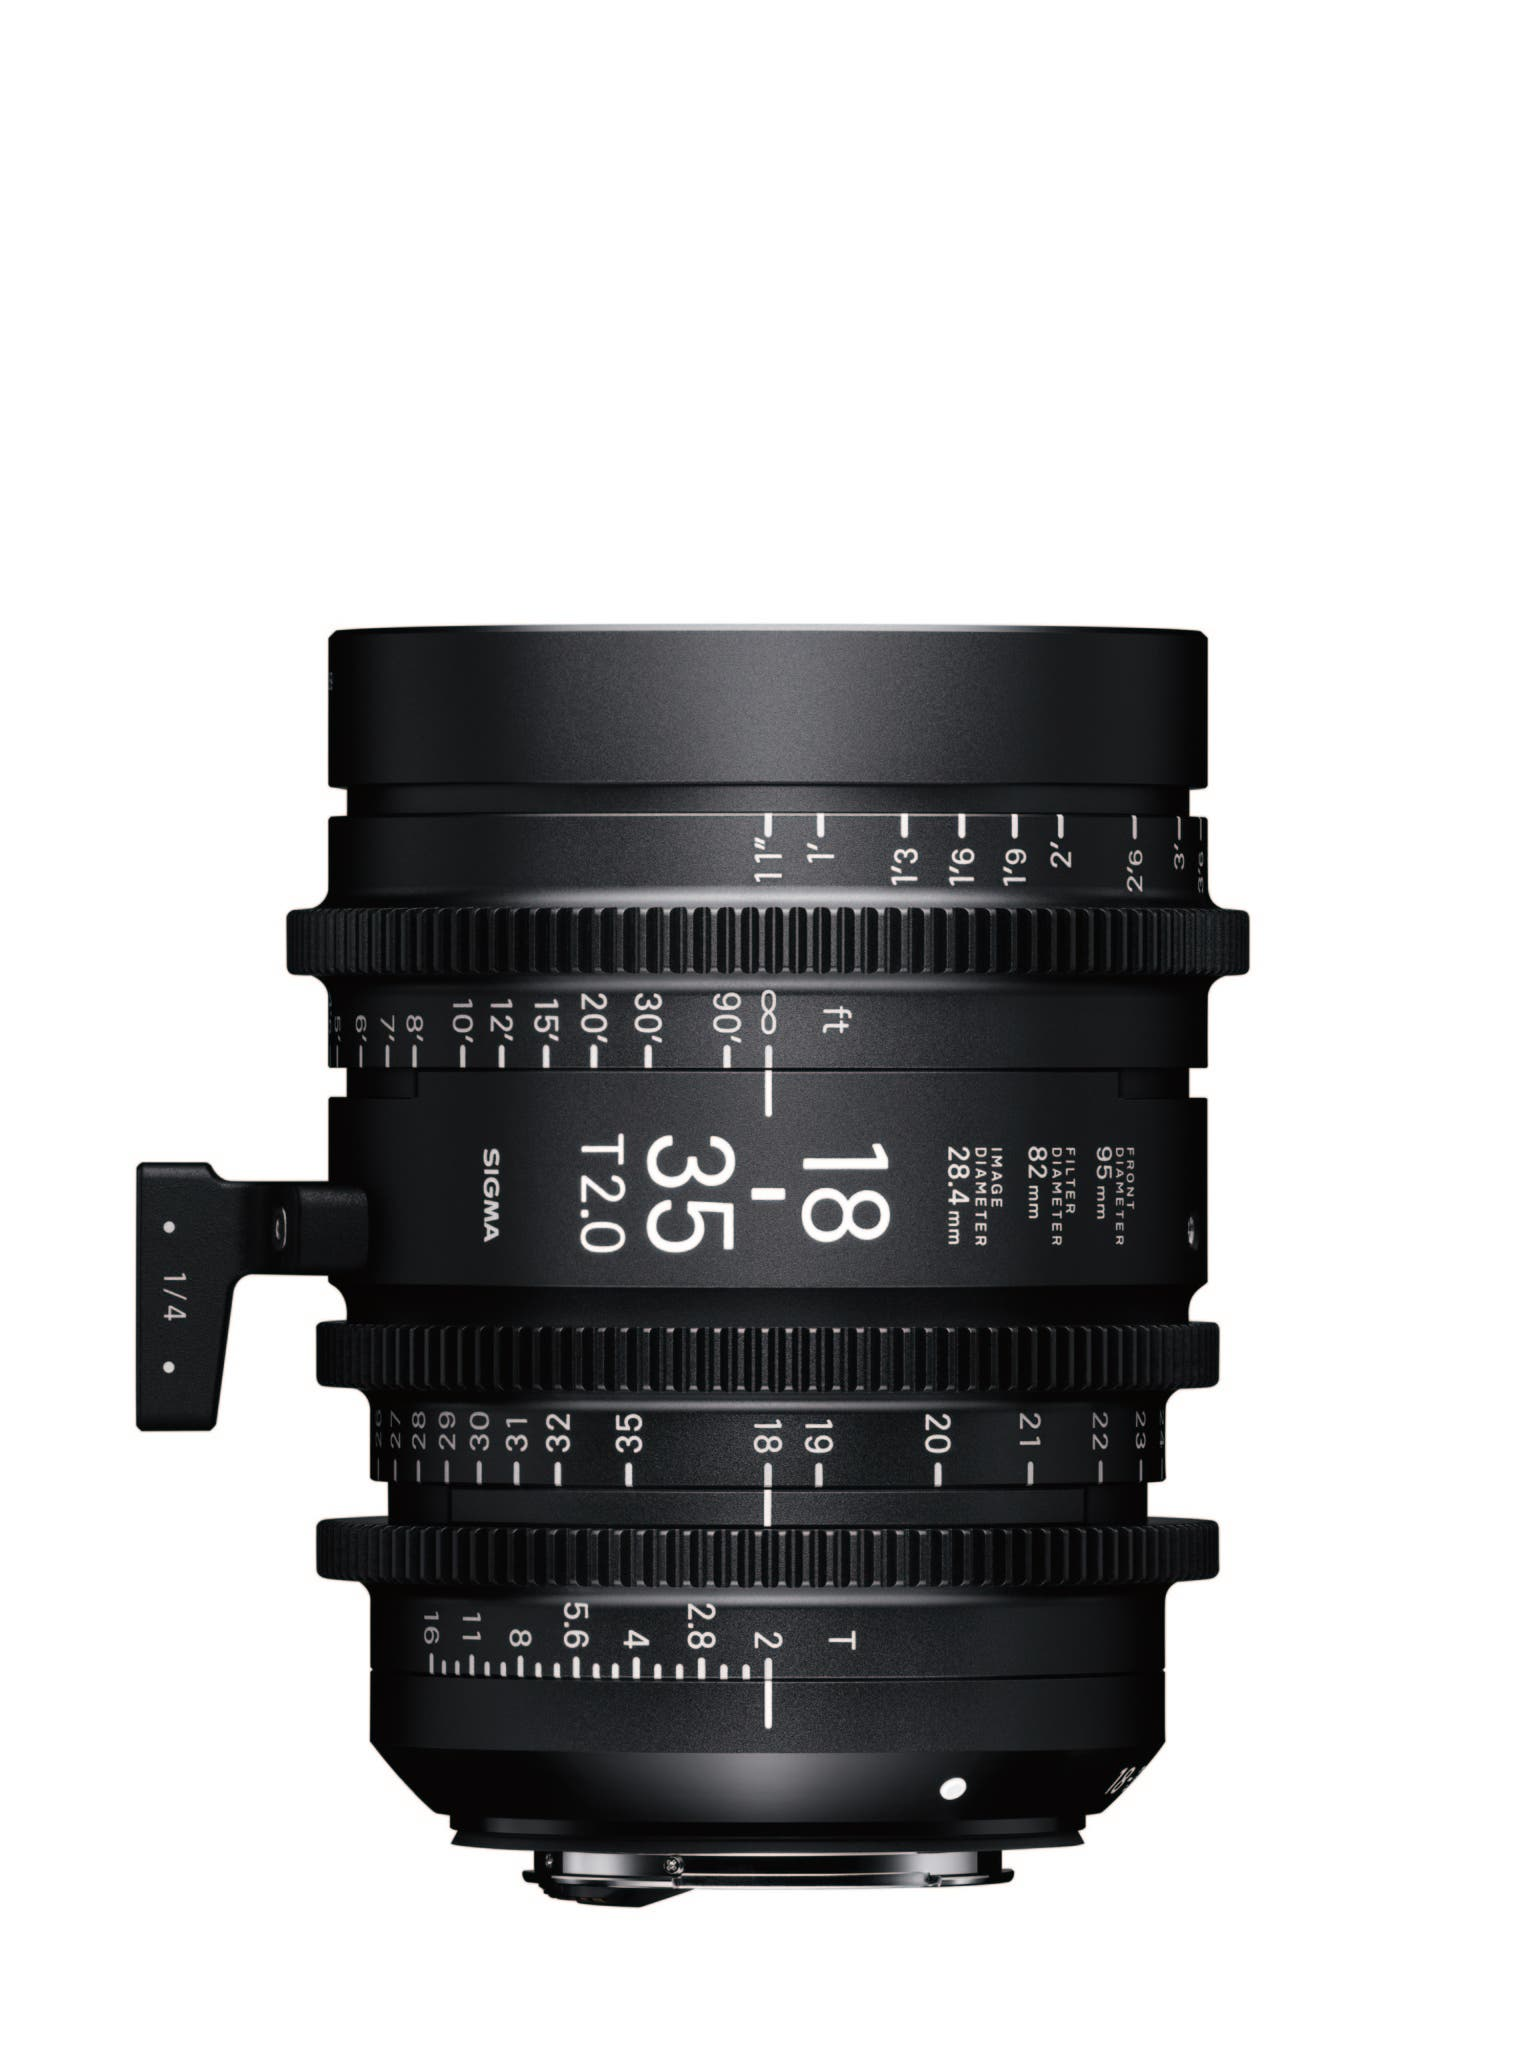 Sigma's New Cinema Zoom Lens Pricing Is Now Available